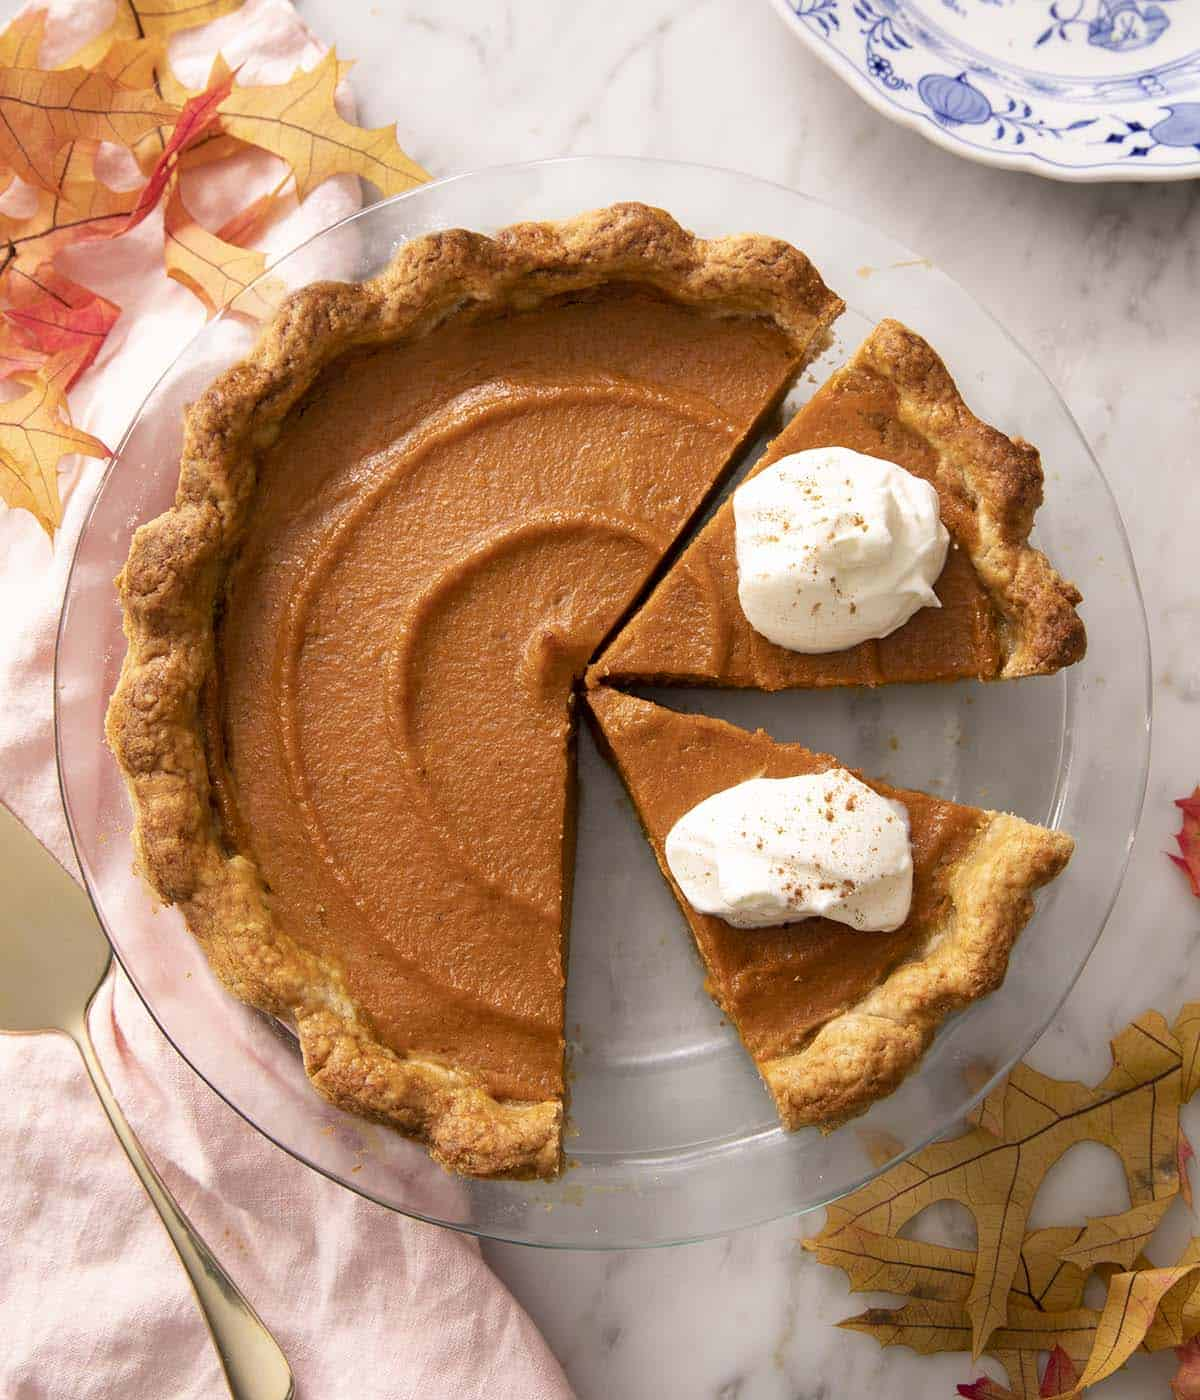 A sweet potato pie with pieces cut out and topped with whipped cream.